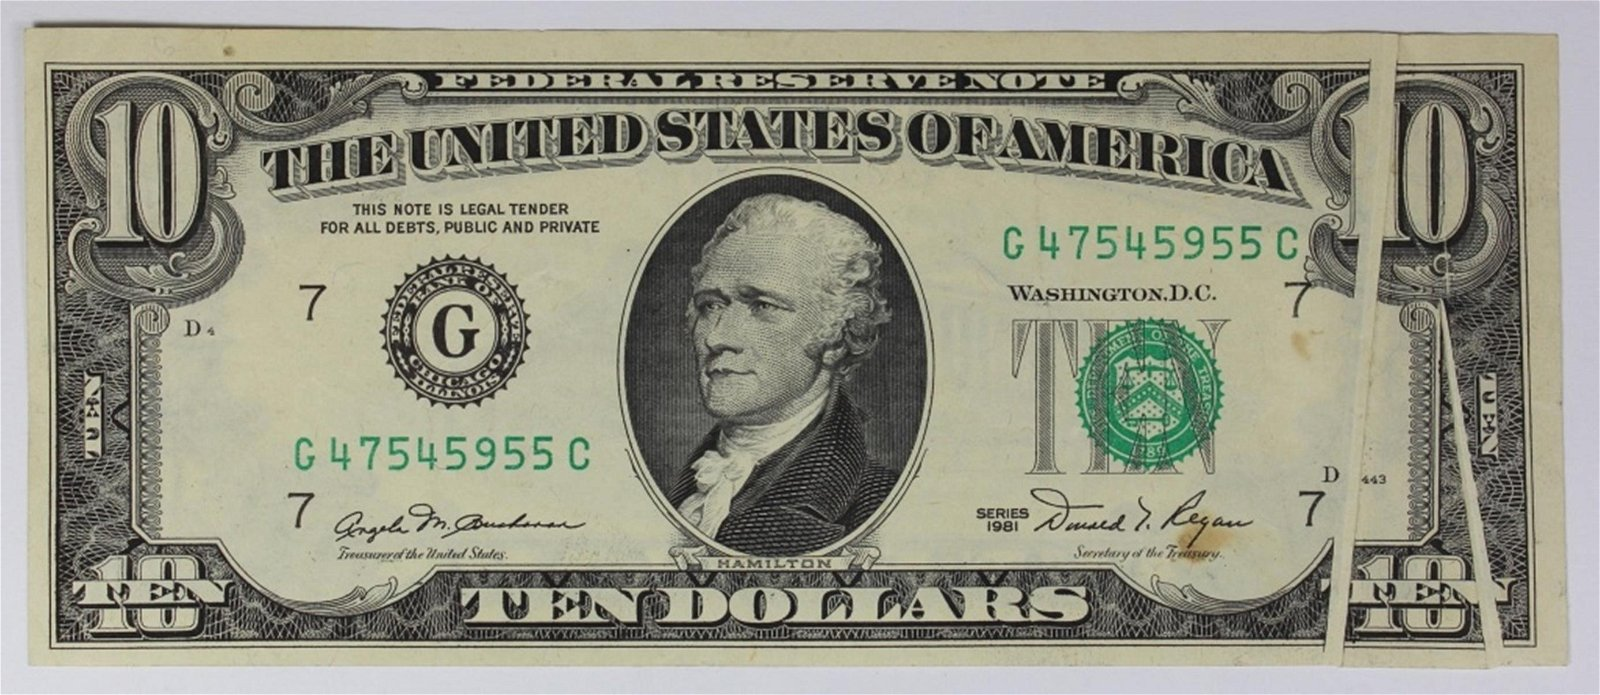 1981 $10.00 FEDERAL RESERVE NOTE